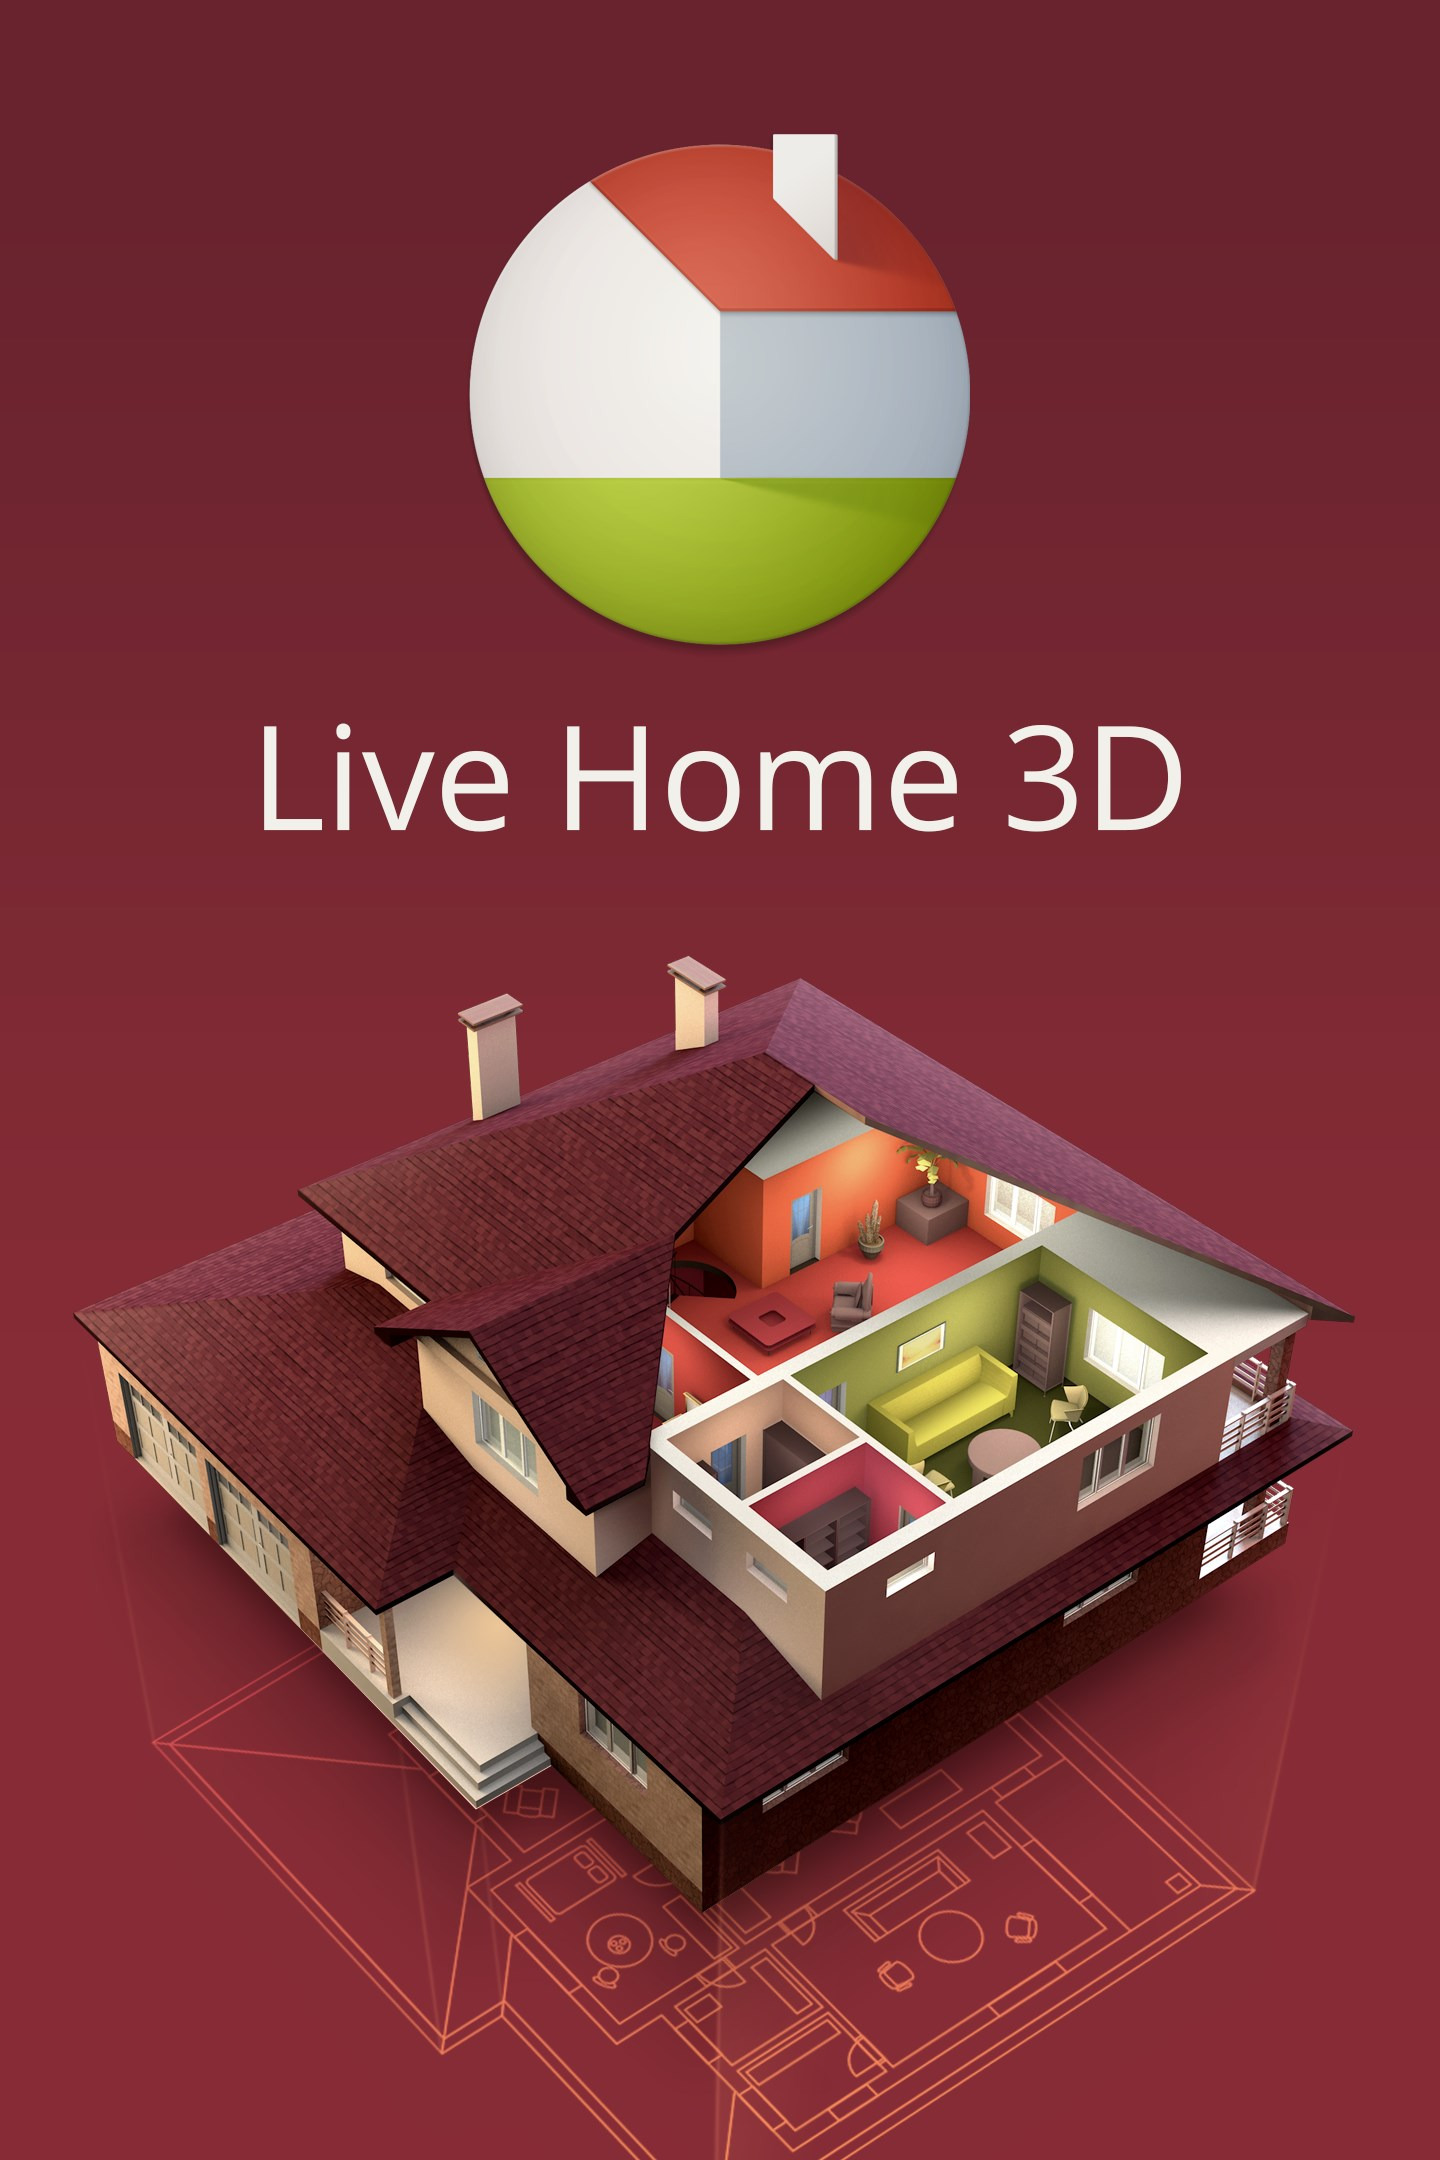 Architectural House Plans software Free Download Elegant Get Live Home 3d Microsoft Store